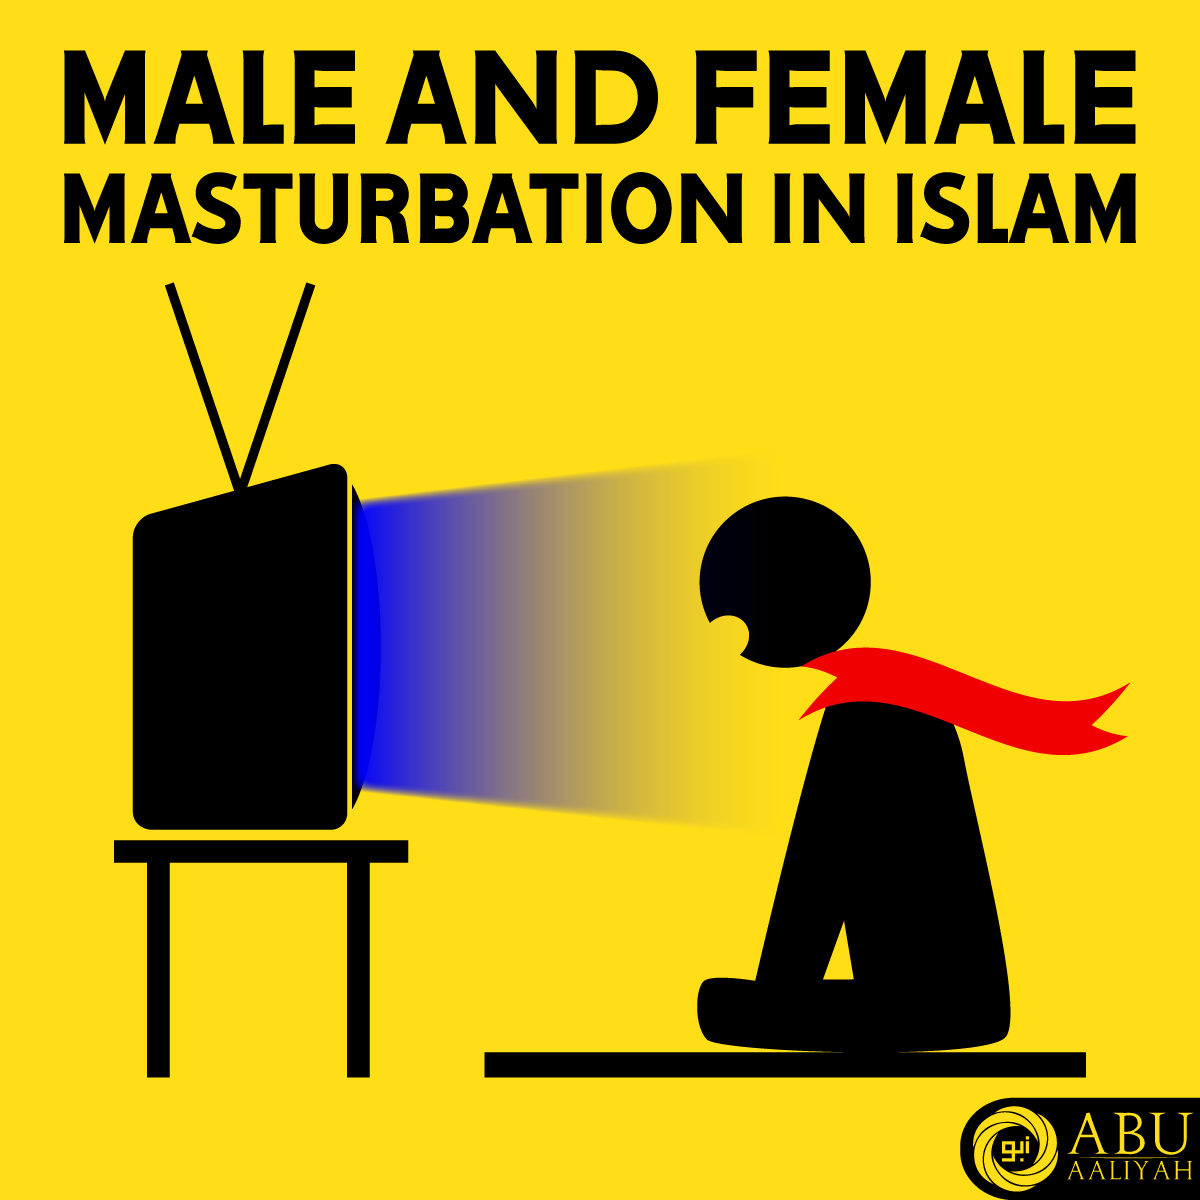 Masturbation female islam